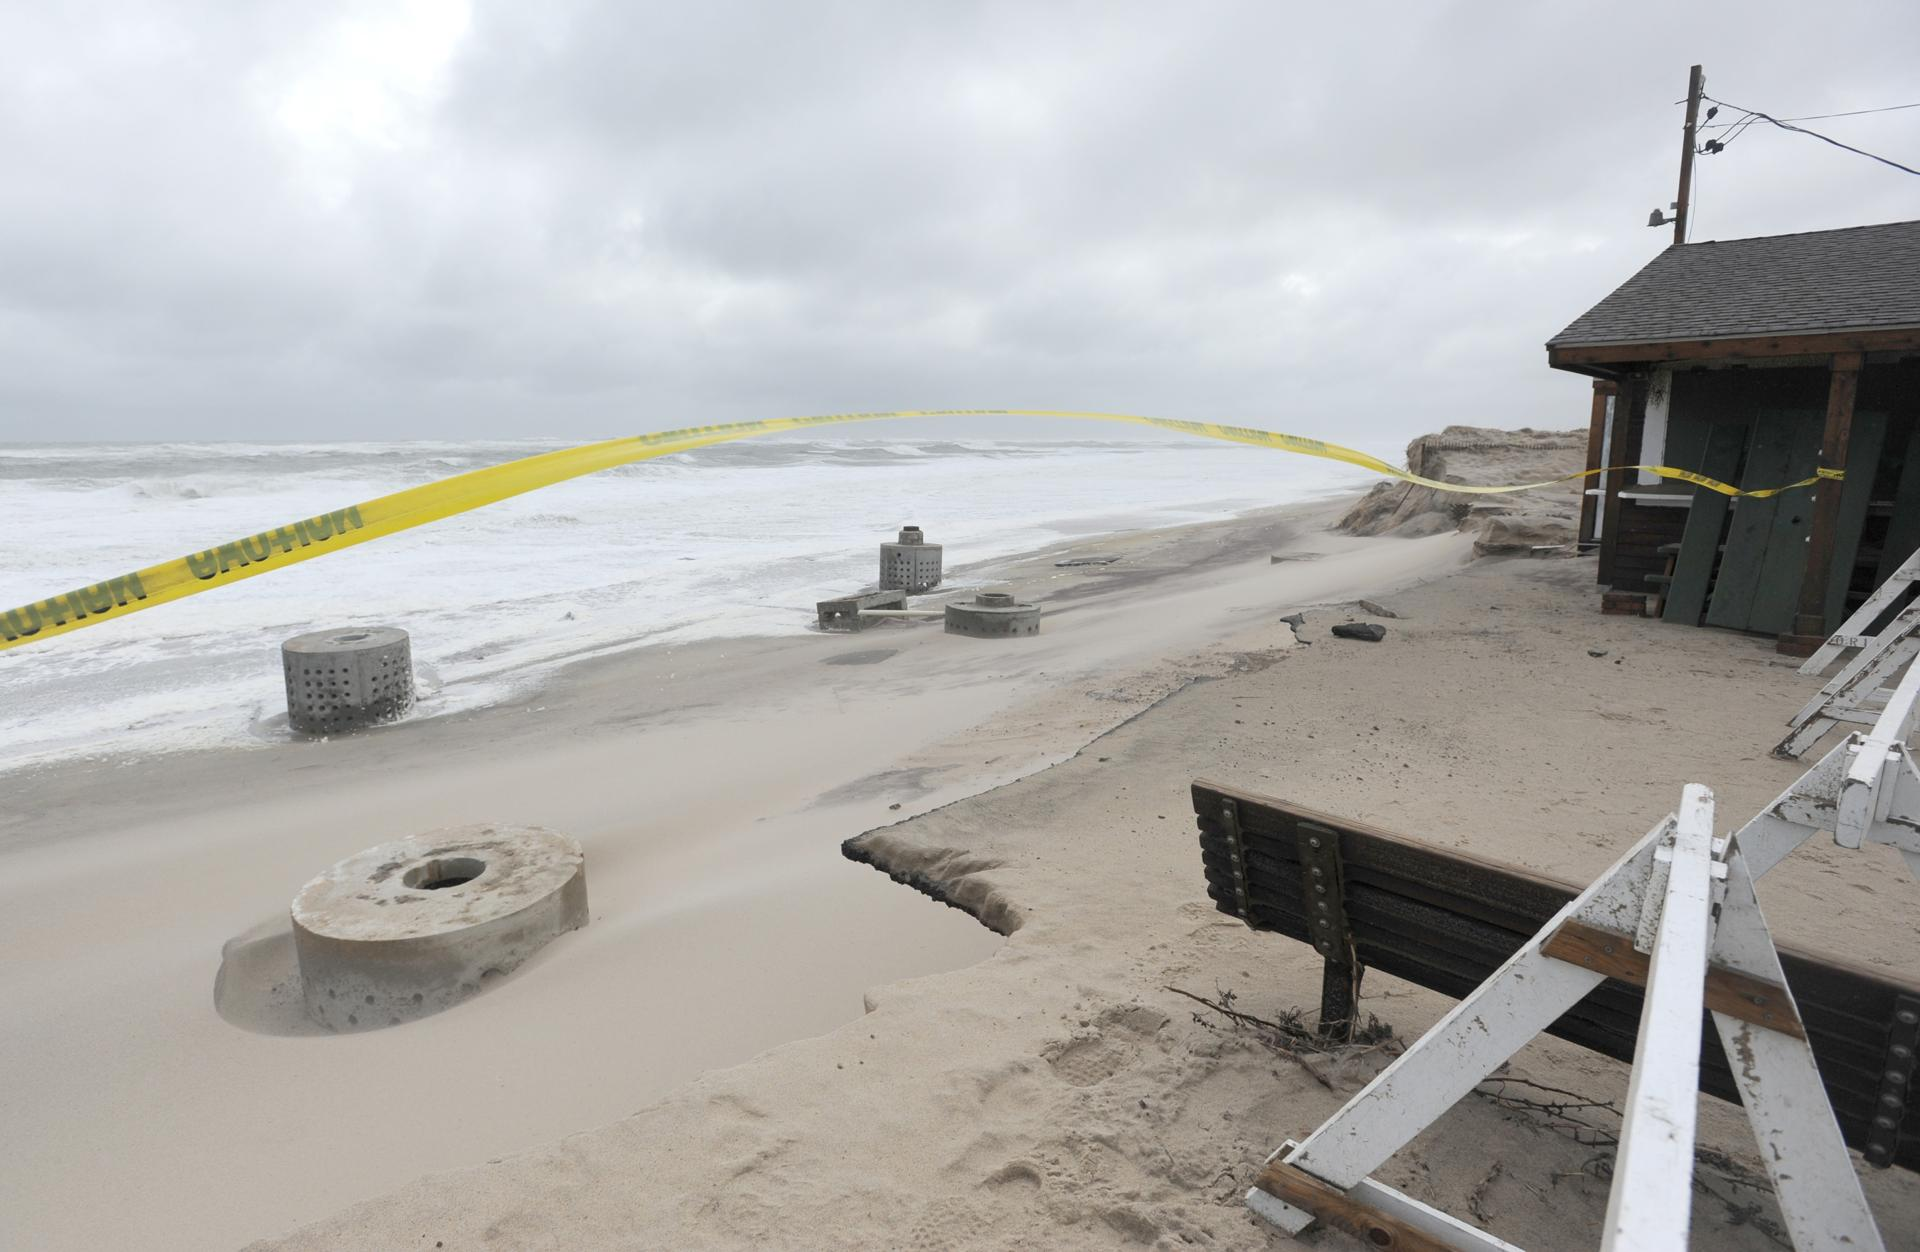 ORLEANS -- 03/05/18 -- Erosion has eaten away at the dune in front of Liam's at Nauset Beach. Town officials will be discussing the future of Liam's at Nauset Beach after the recent storm damaged the dune that the snack shack sits on. Ohman has held the contact with the town to run Liam's since 1990. Merrily Cassidy/Cape Cod Times